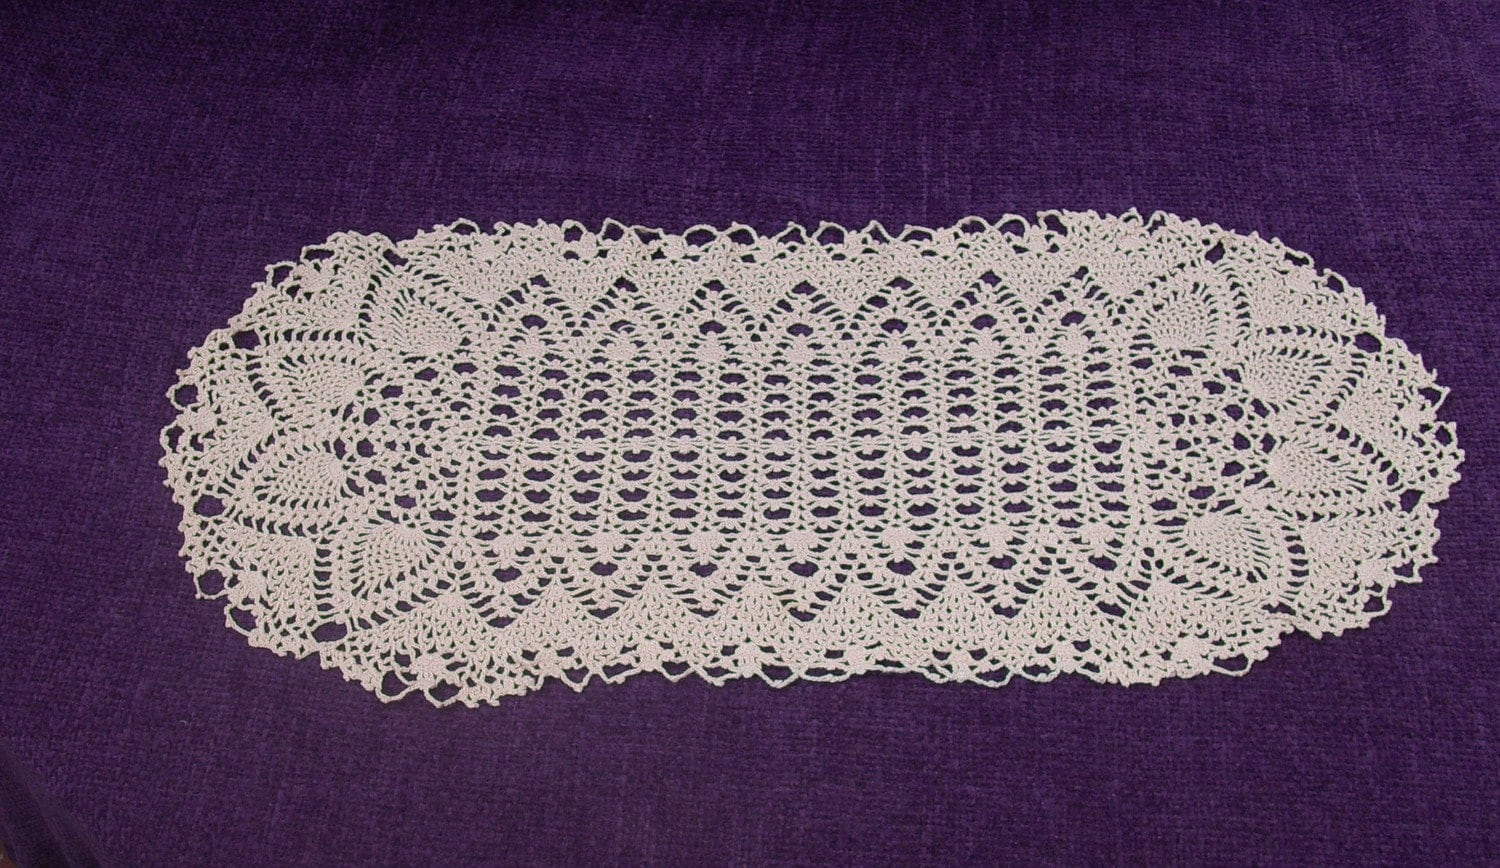 Crochet doily table runner centerpiece lace doily runner ...